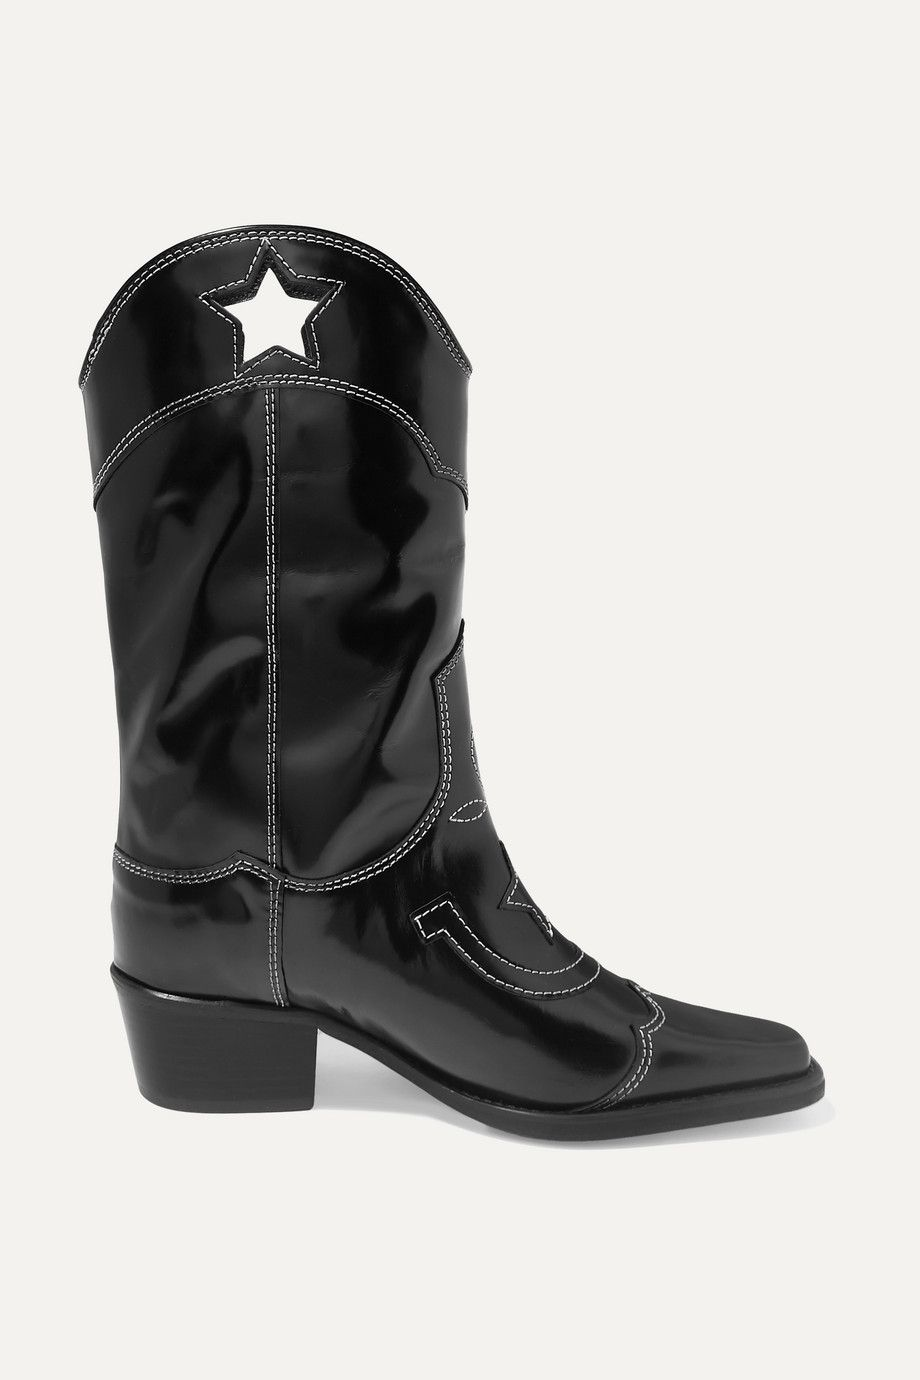 ganni-embroidered-patent-leather-cutout-boots-net-a-porter-sale